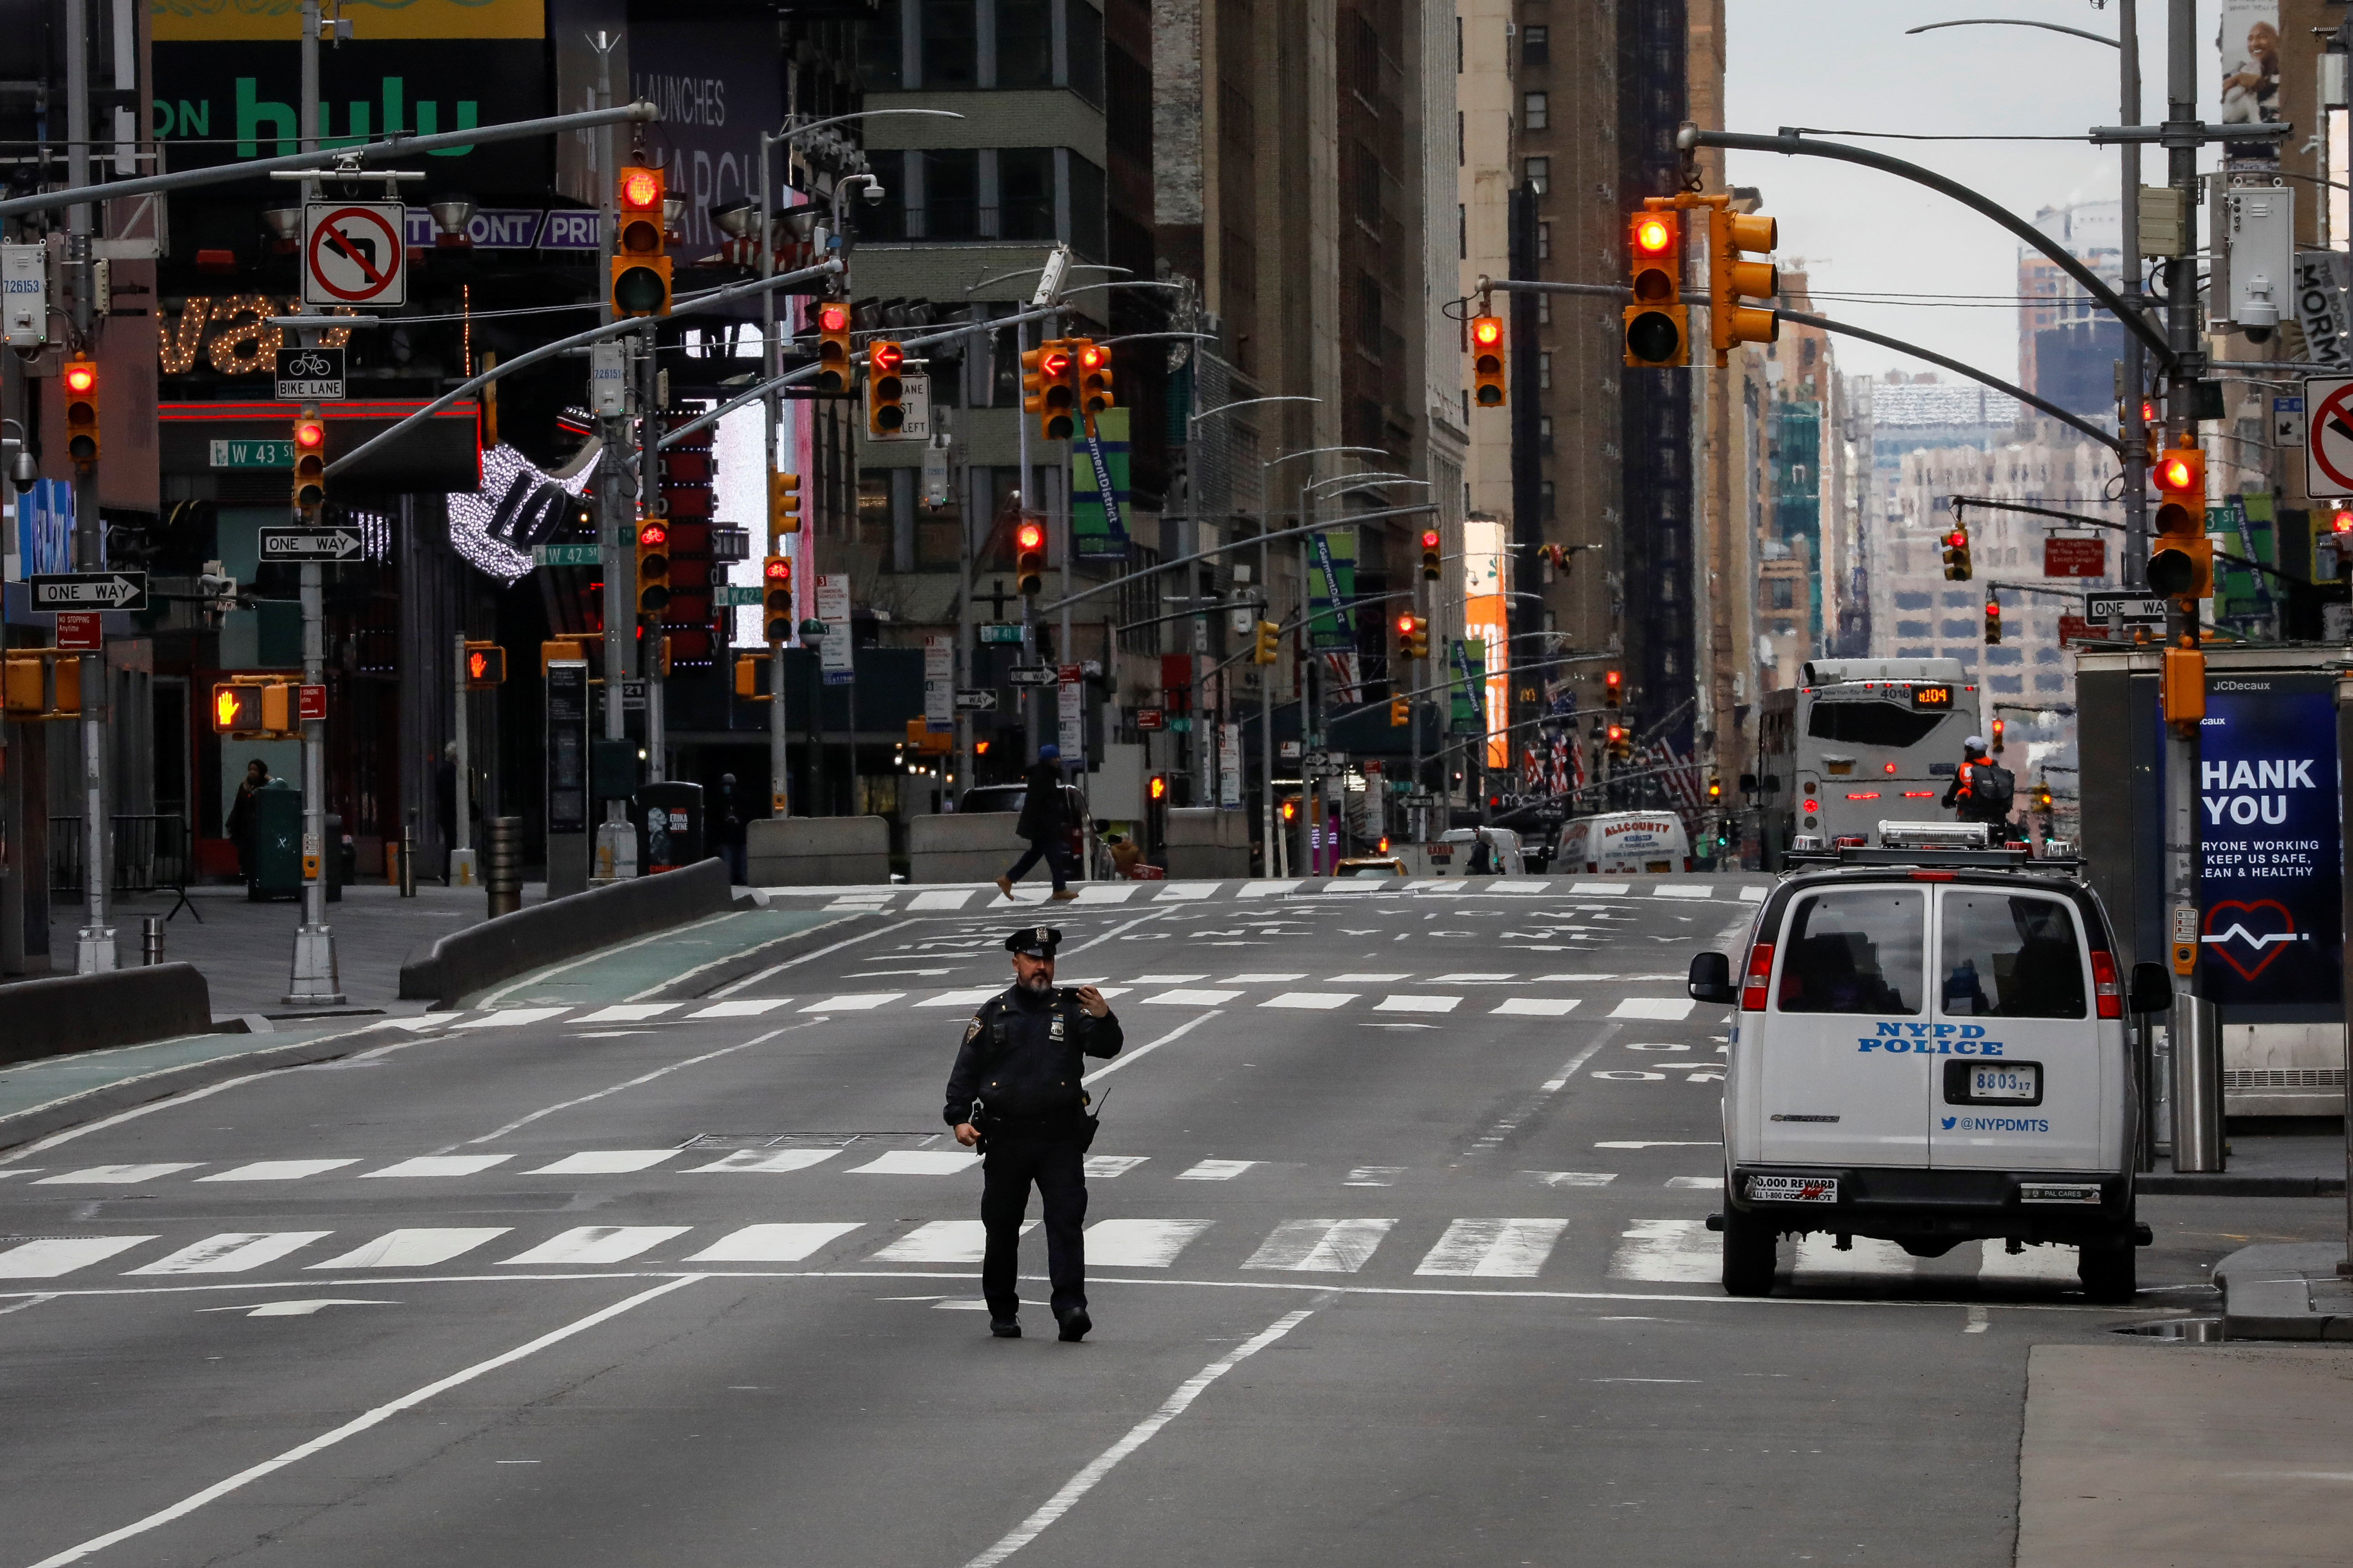 A New York City Police officer (NYPD) takes a selfie while in the middle of the street in an almost empty Times Square, during the coronavirus disease (COVID-19) outbreak, in New York City, U.S., March 31, 2020. REUTERS/Brendan McDermid     TPX IMAGES OF THE DAY - RC2GVF94Y1ID